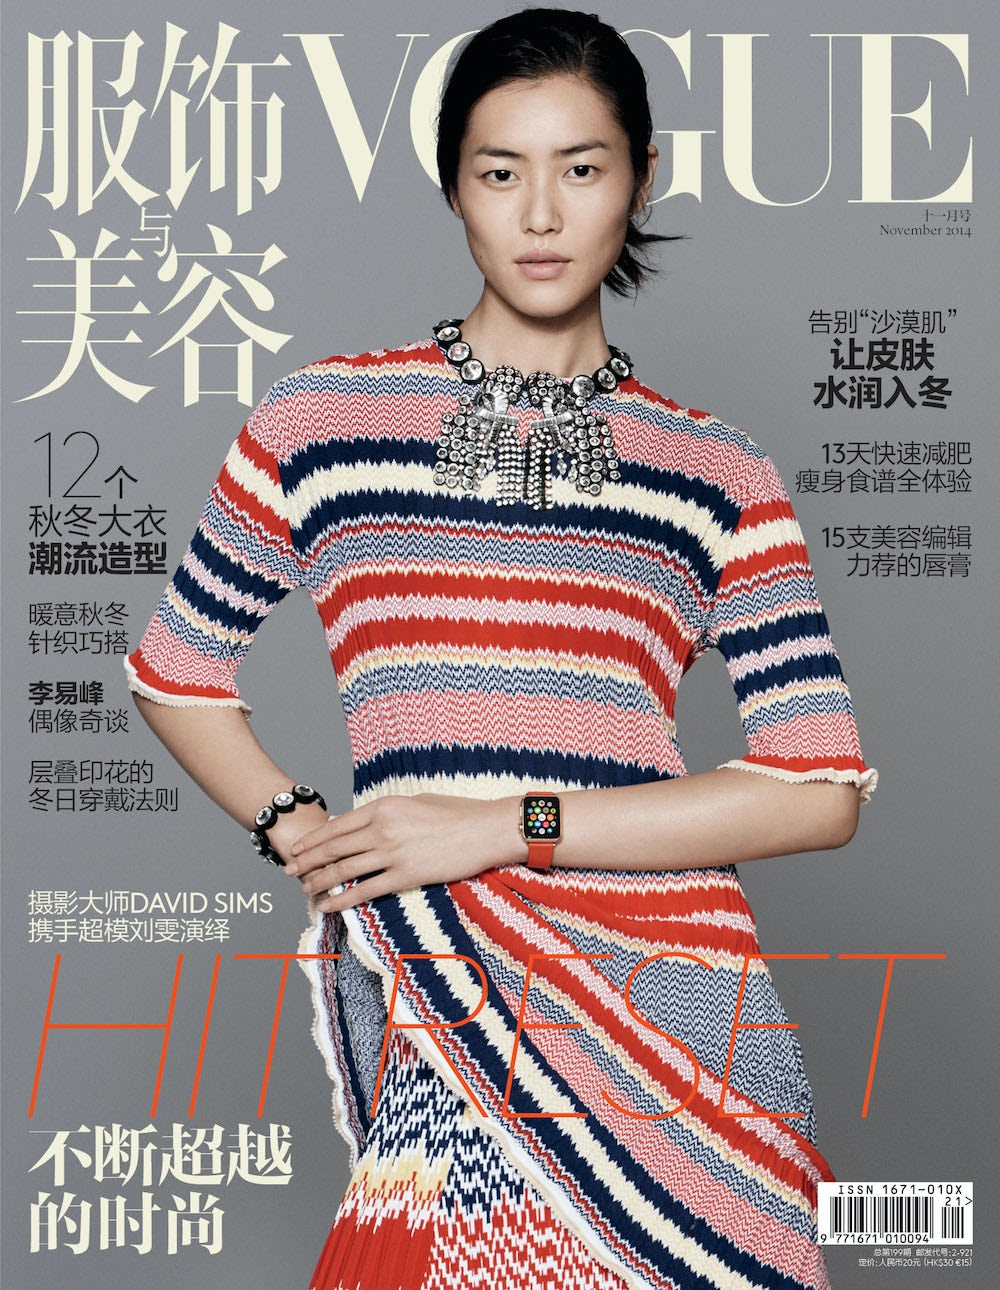 The cover of Vogue China's November issue, featuring the Apple Watch | Source: Vogue China